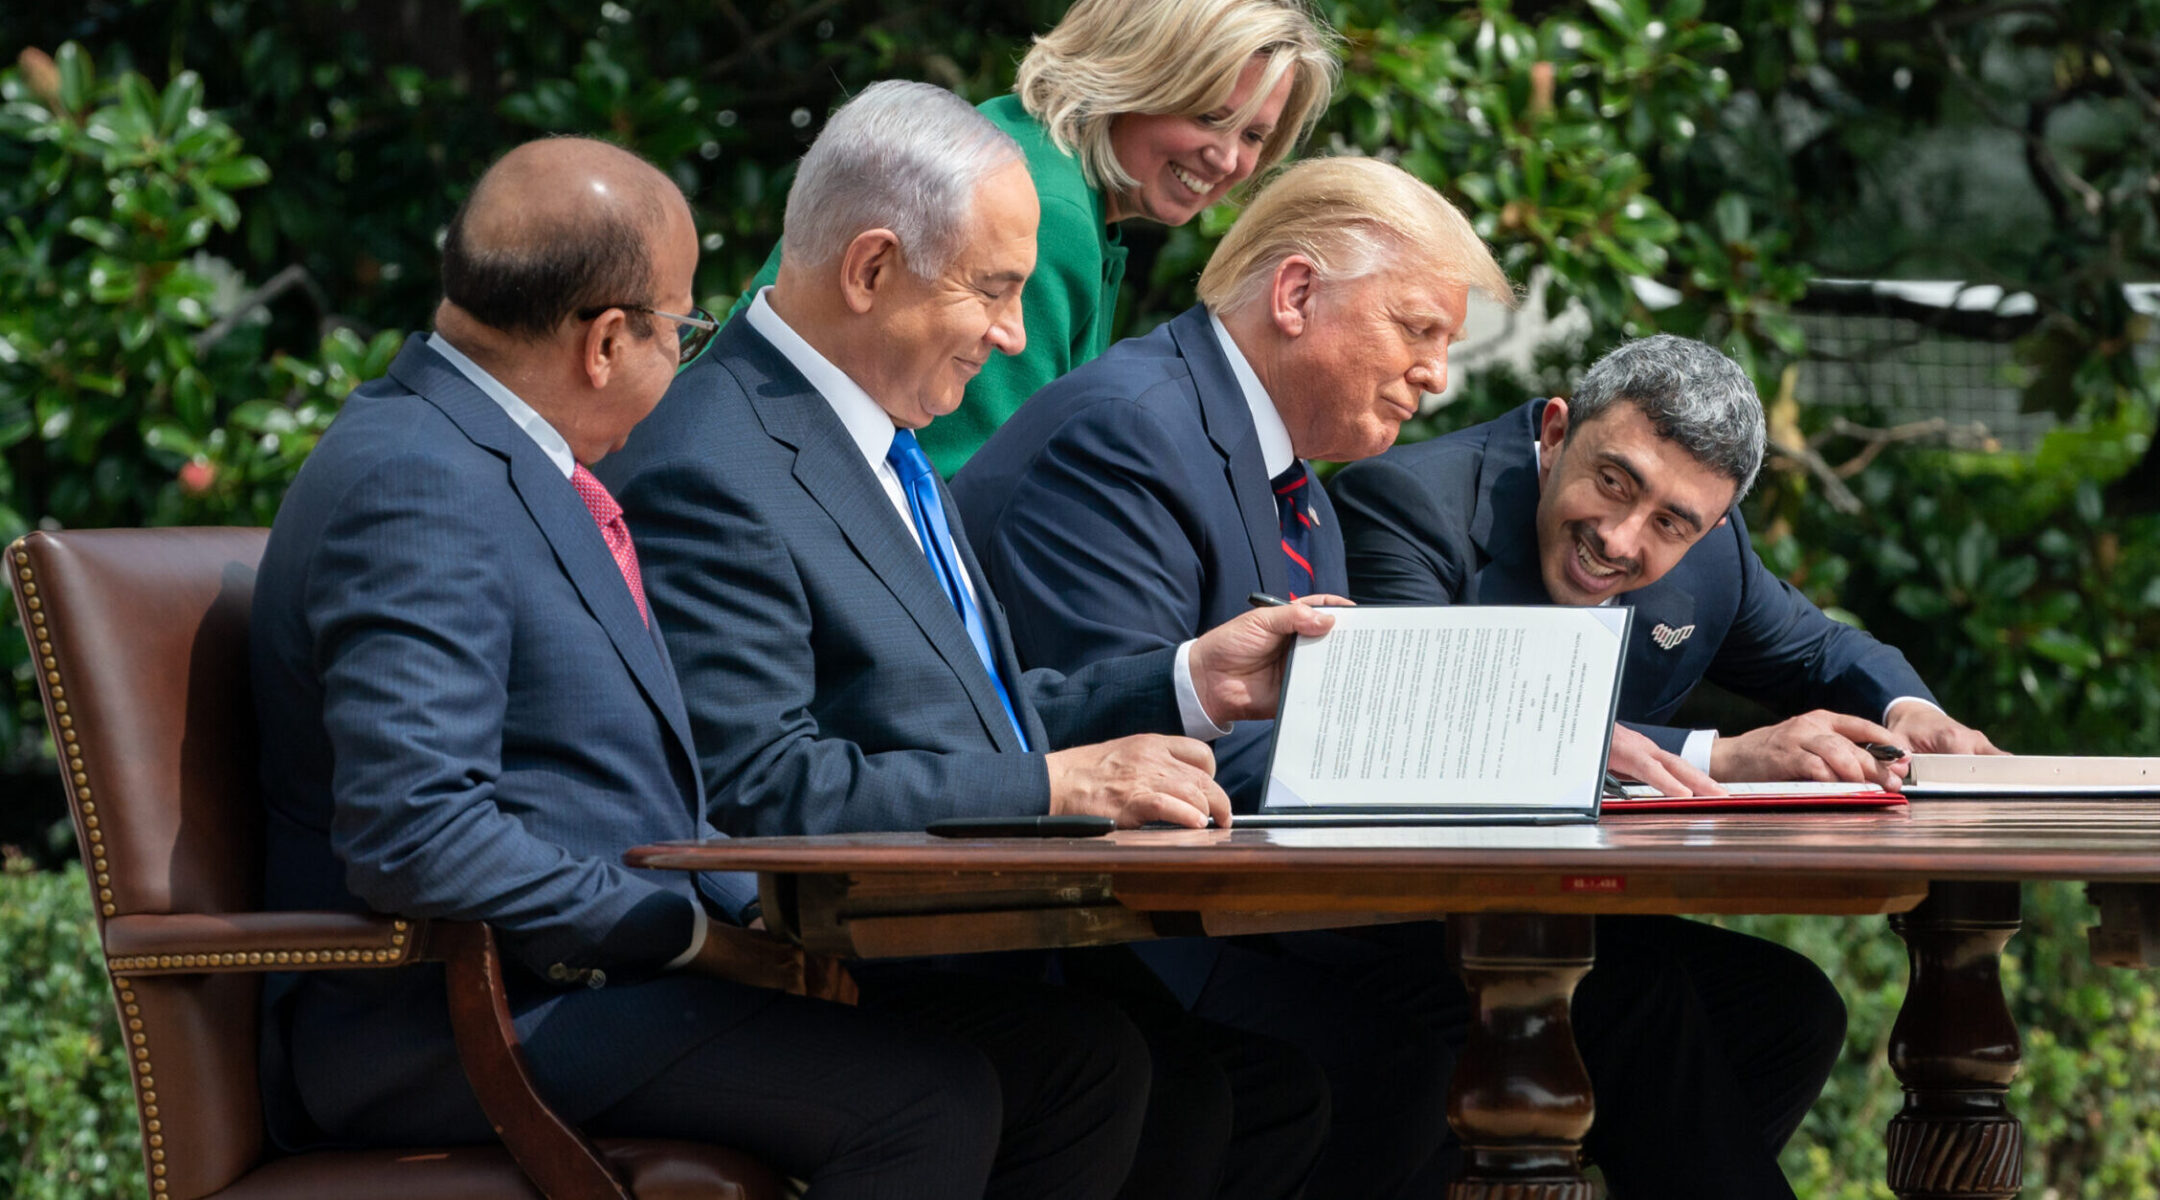 The signing ceremony for the agreements on normalization of relations reached by Israel, the United Arab Emirates and Bahrain at the White House, Sept. 15, 2020. (Photo/JTA-The White House-Andrea Hanks-Anadolu Agency via Getty Images)